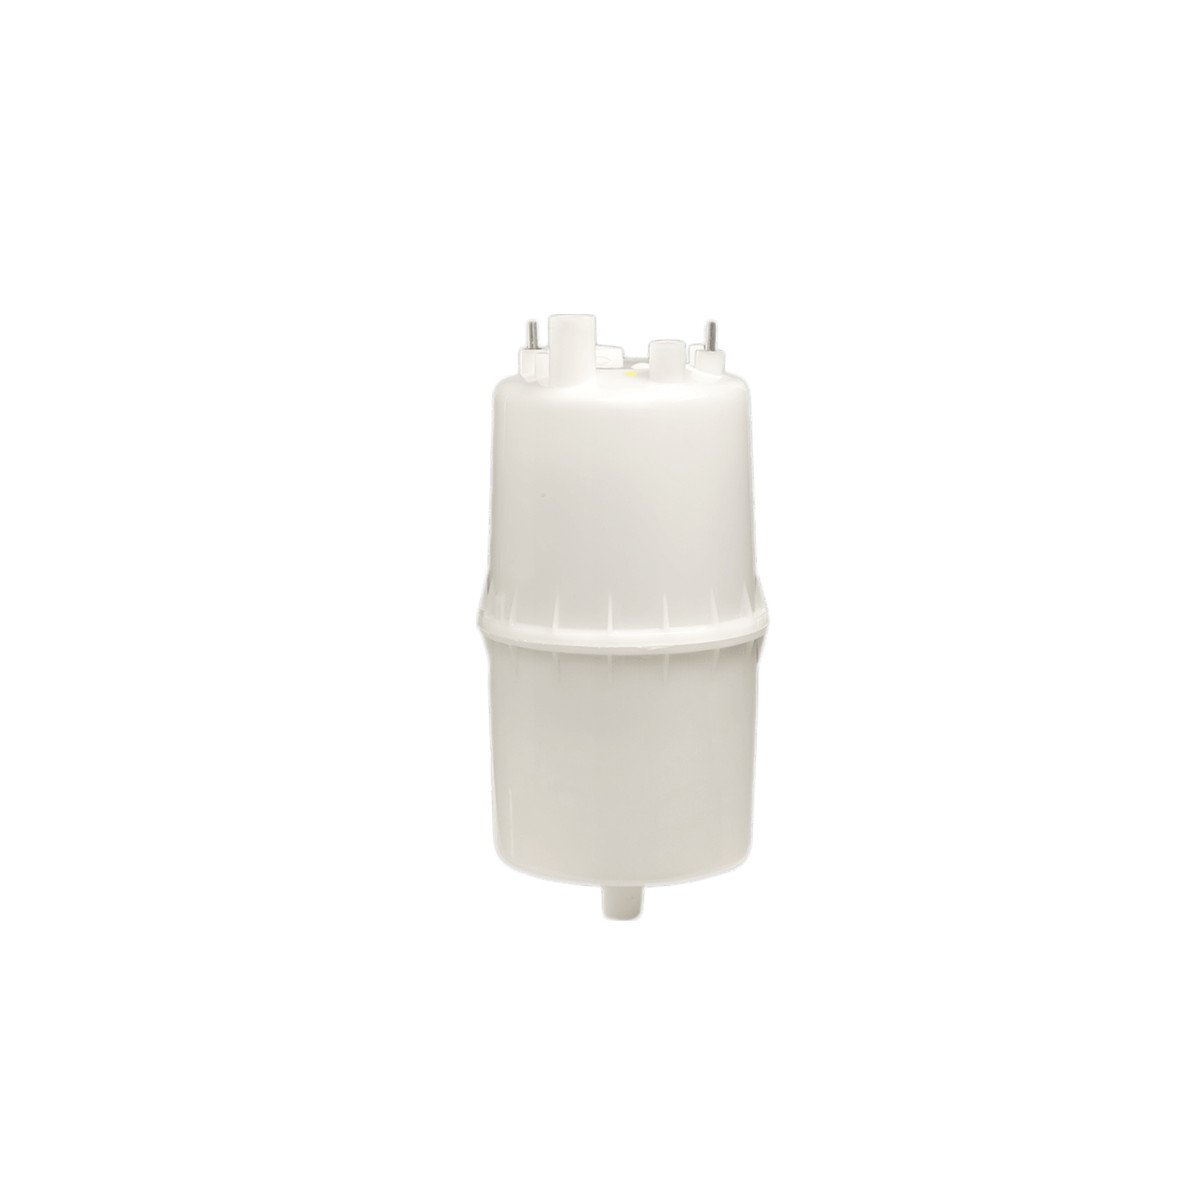 Aprilaire 204A Steam Humidifier Cylinder (Equivalent to Nortec 204)